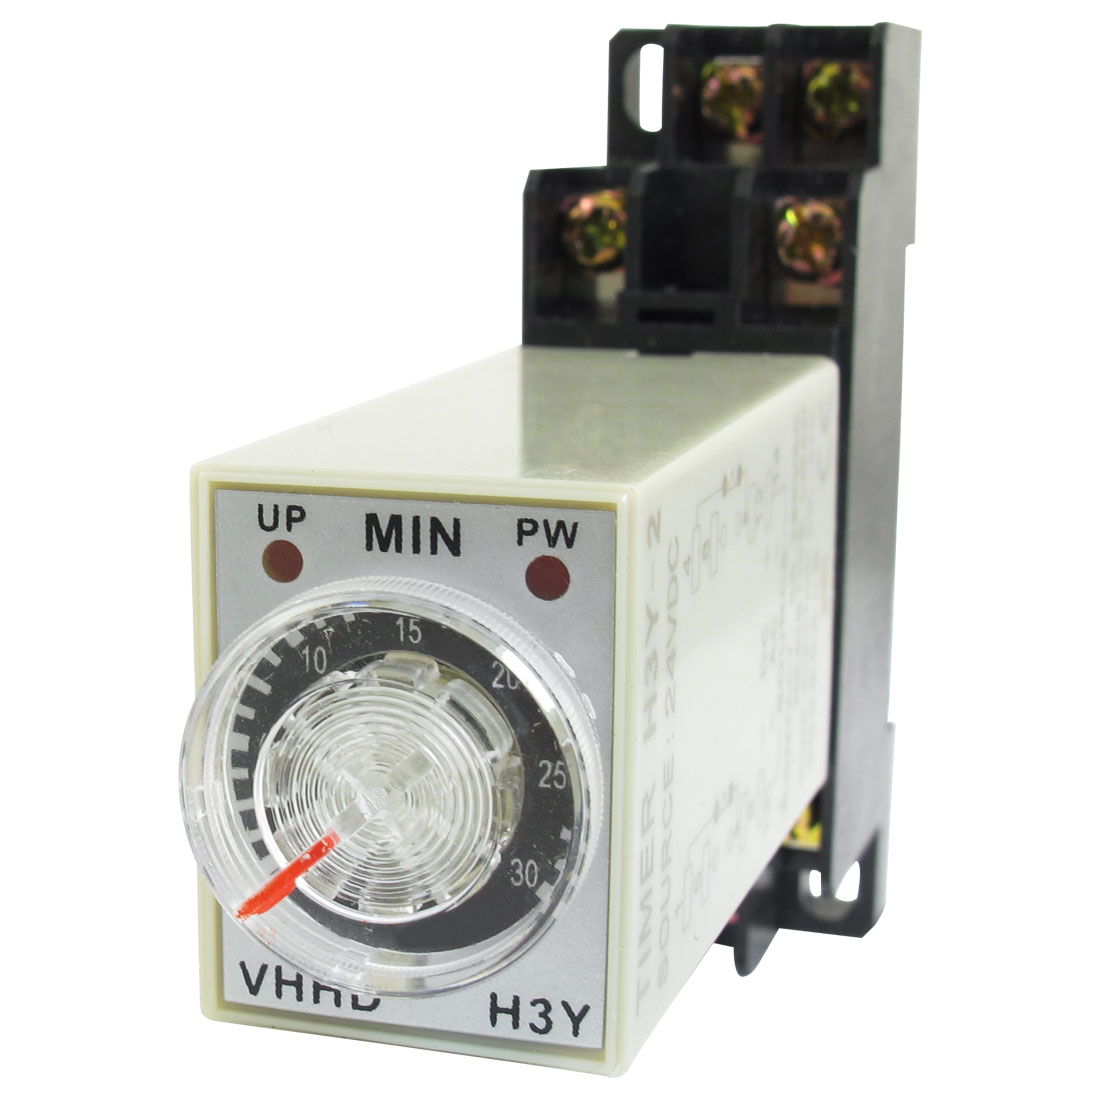 DC 24V 0-30 Minute 30m Timer Power On Delay Time Relay 8 Pin H3Y-2 w Socket